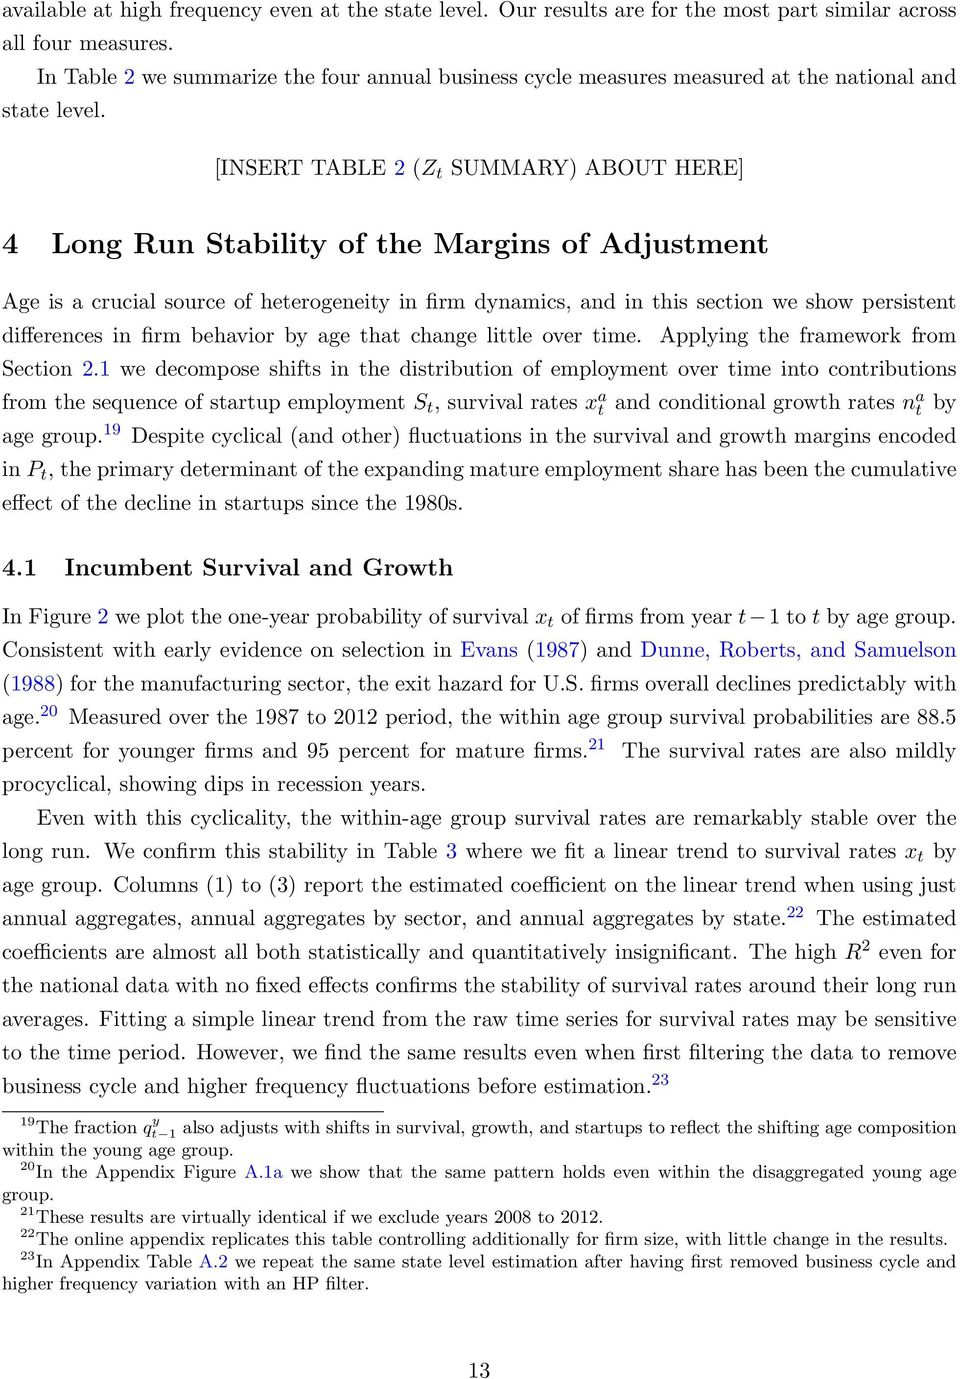 [INSERT TABLE 2 (Z t SUMMARY) ABOUT HERE] 4 Long Run Stability of the Margins of Adjustment Age is a crucial source of heterogeneity in firm dynamics, and in this section we show persistent